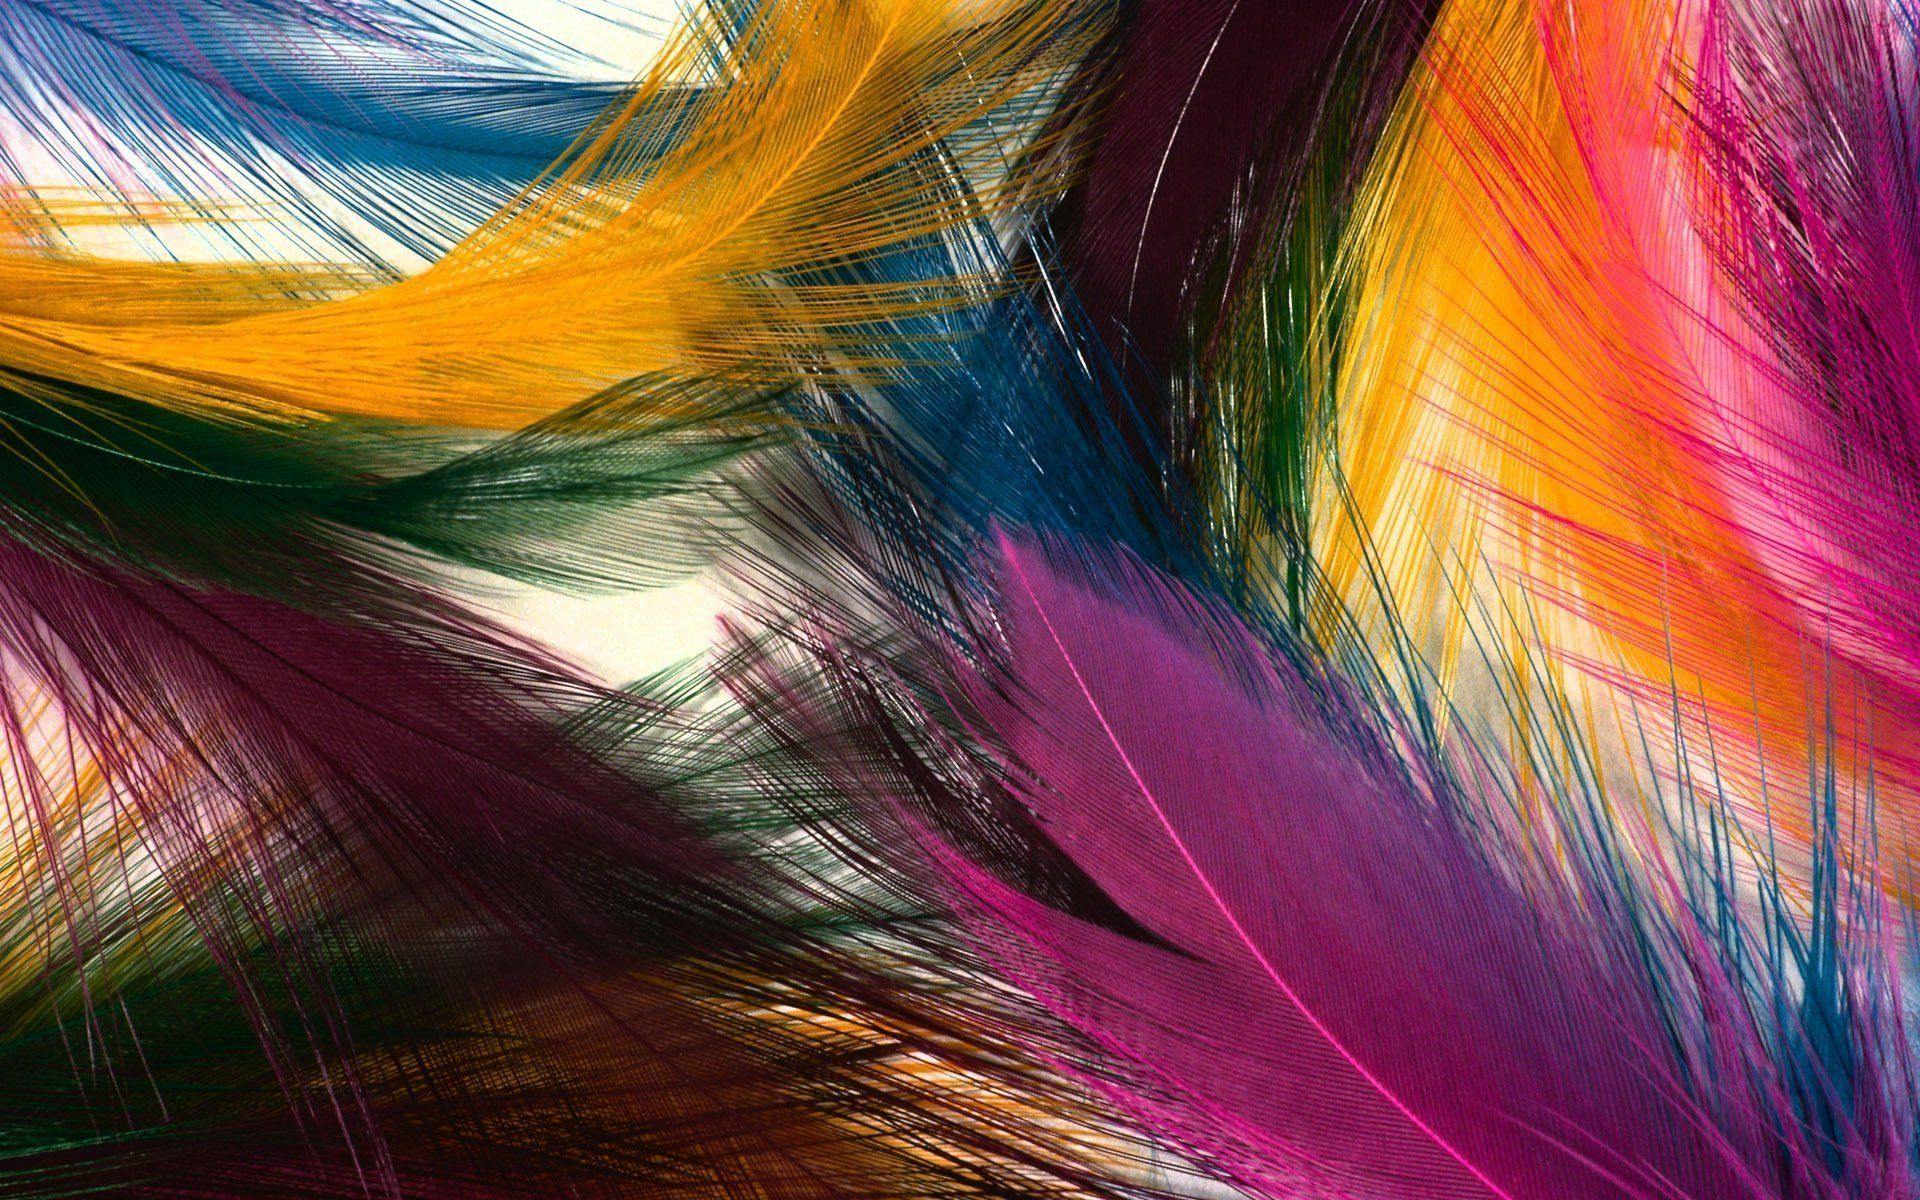 Abstract Colorful Feathers Most Beautiful Hd Wide